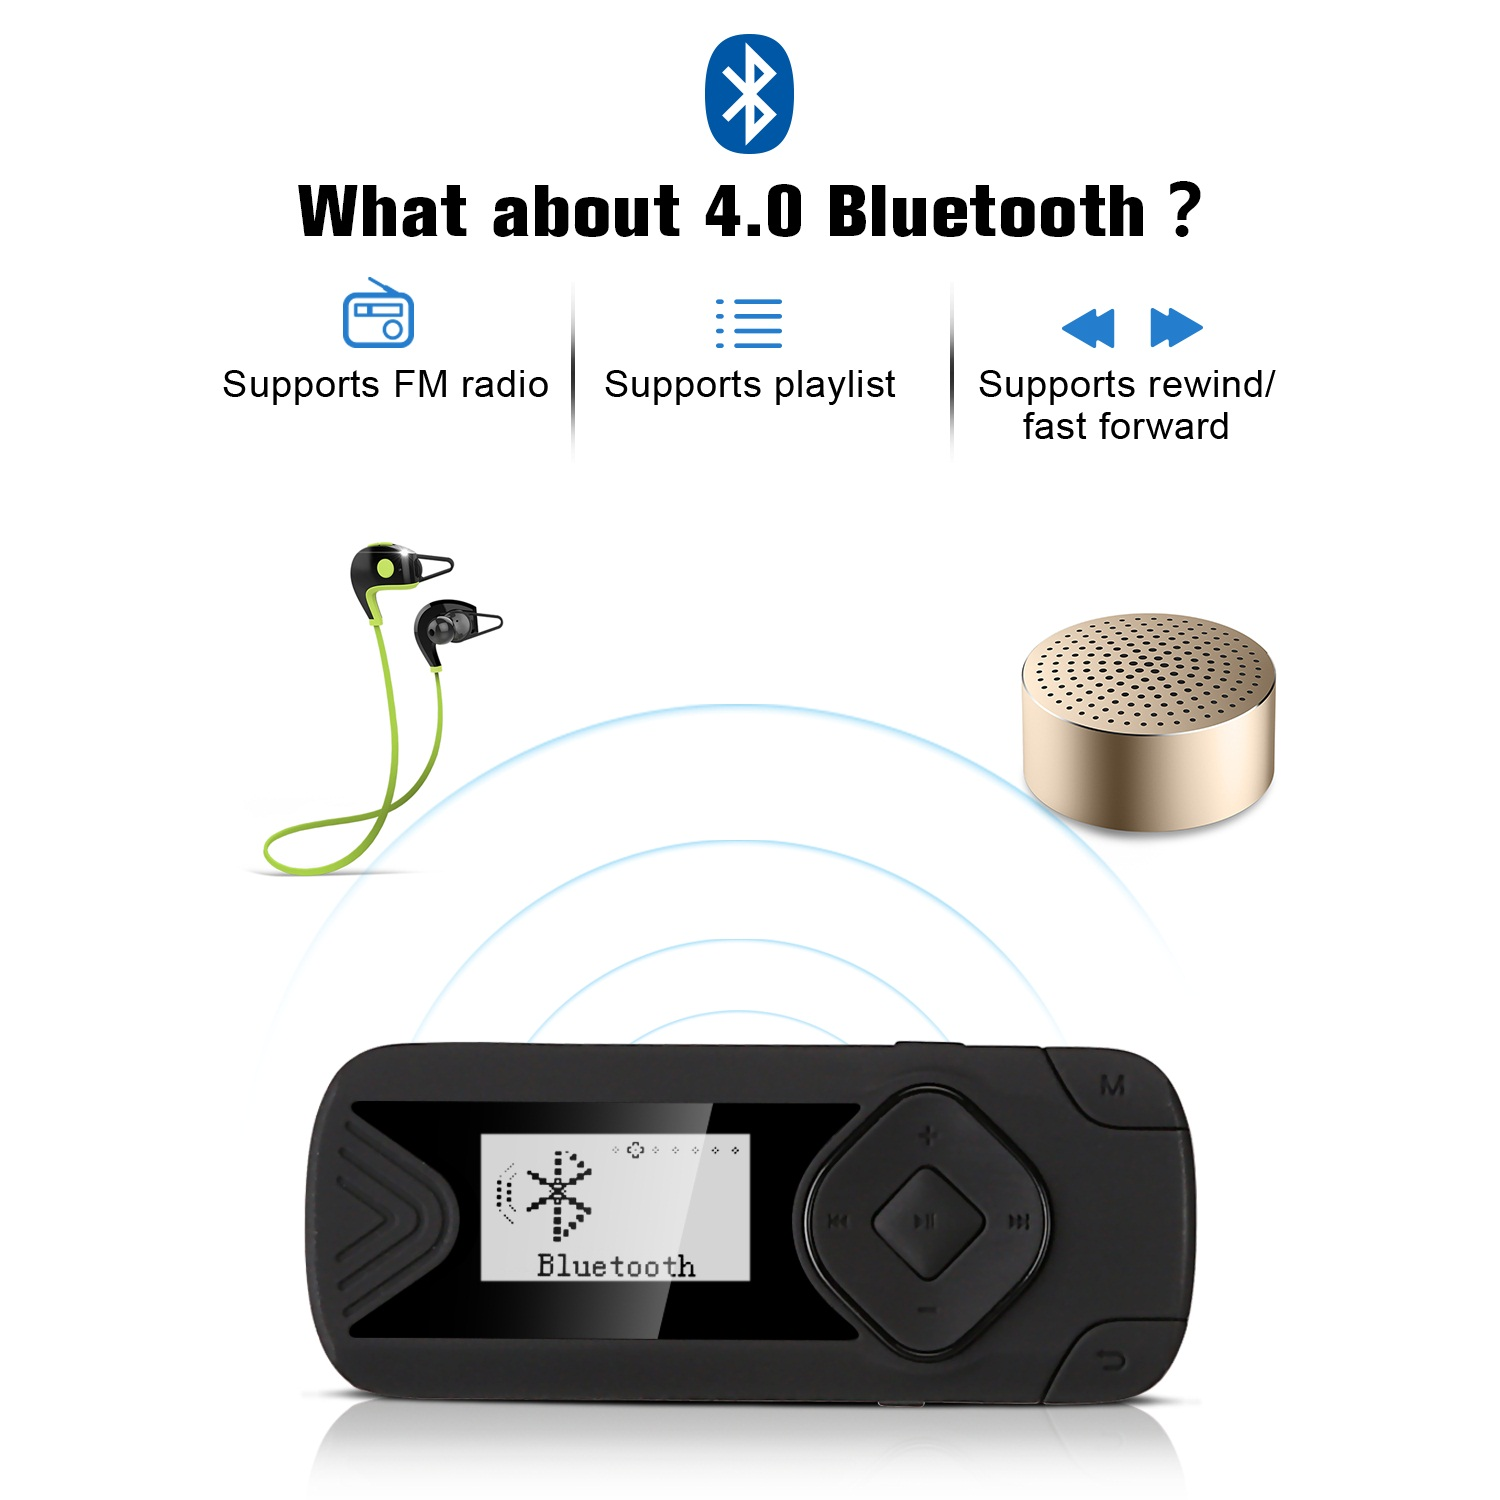 Details about AGPTEK R1S 16GB Bluetooth MP3 Player, Clip Lossless Music  Player